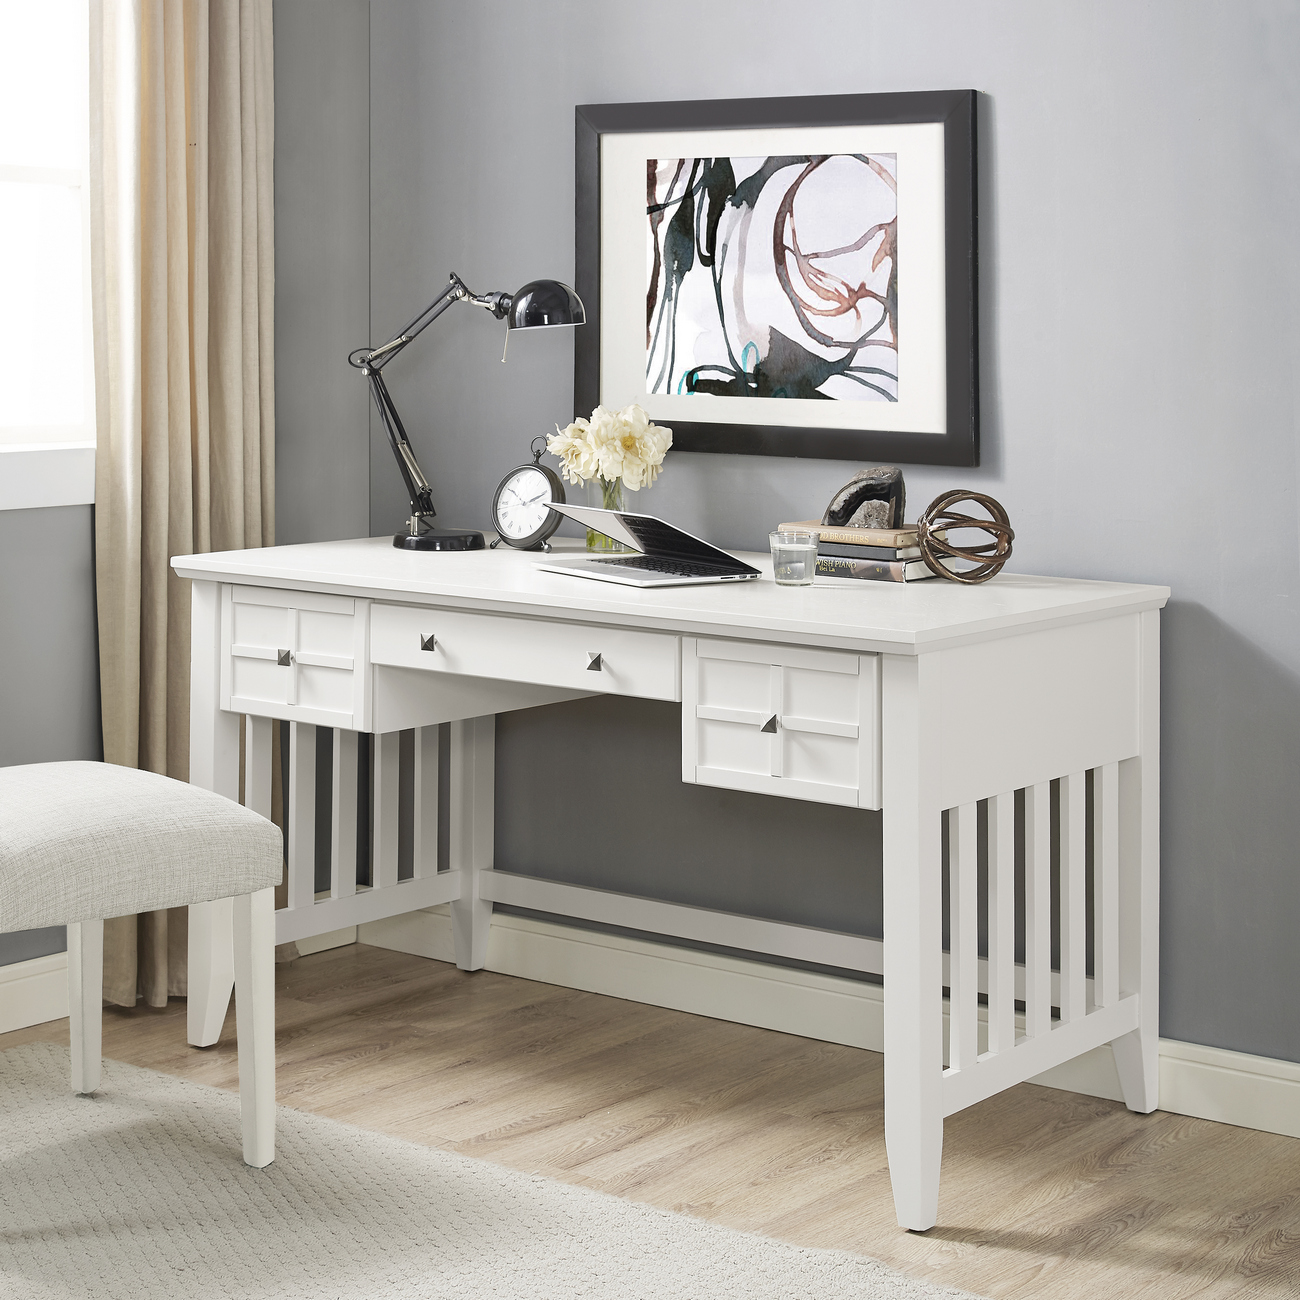 Adler Computer Desk in White Finish - Crosley CF6508-WH